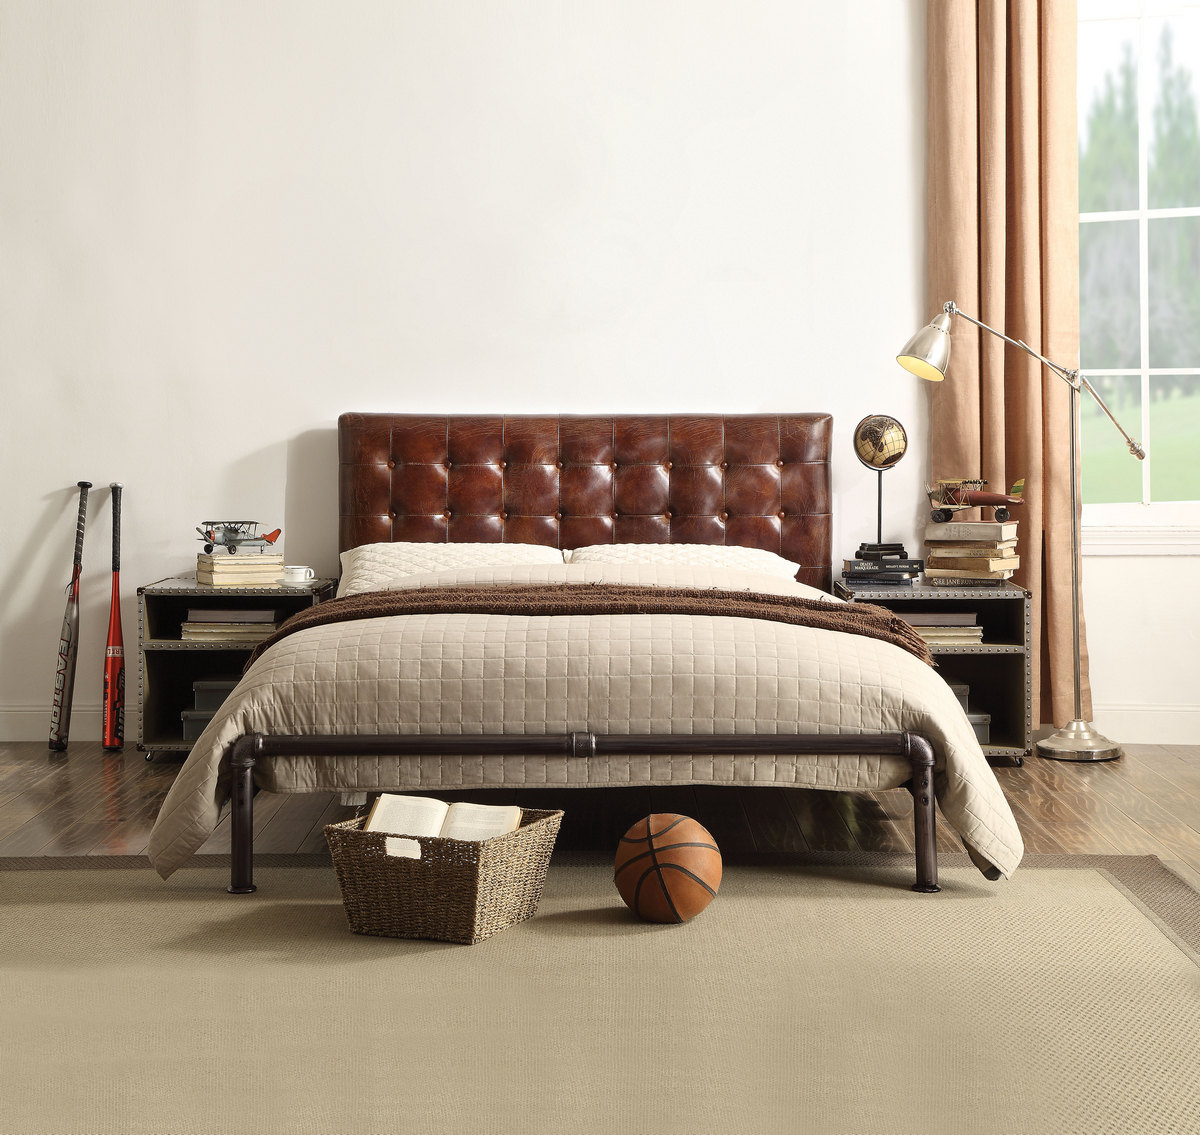 Acme Furniture Queen Bed Photo